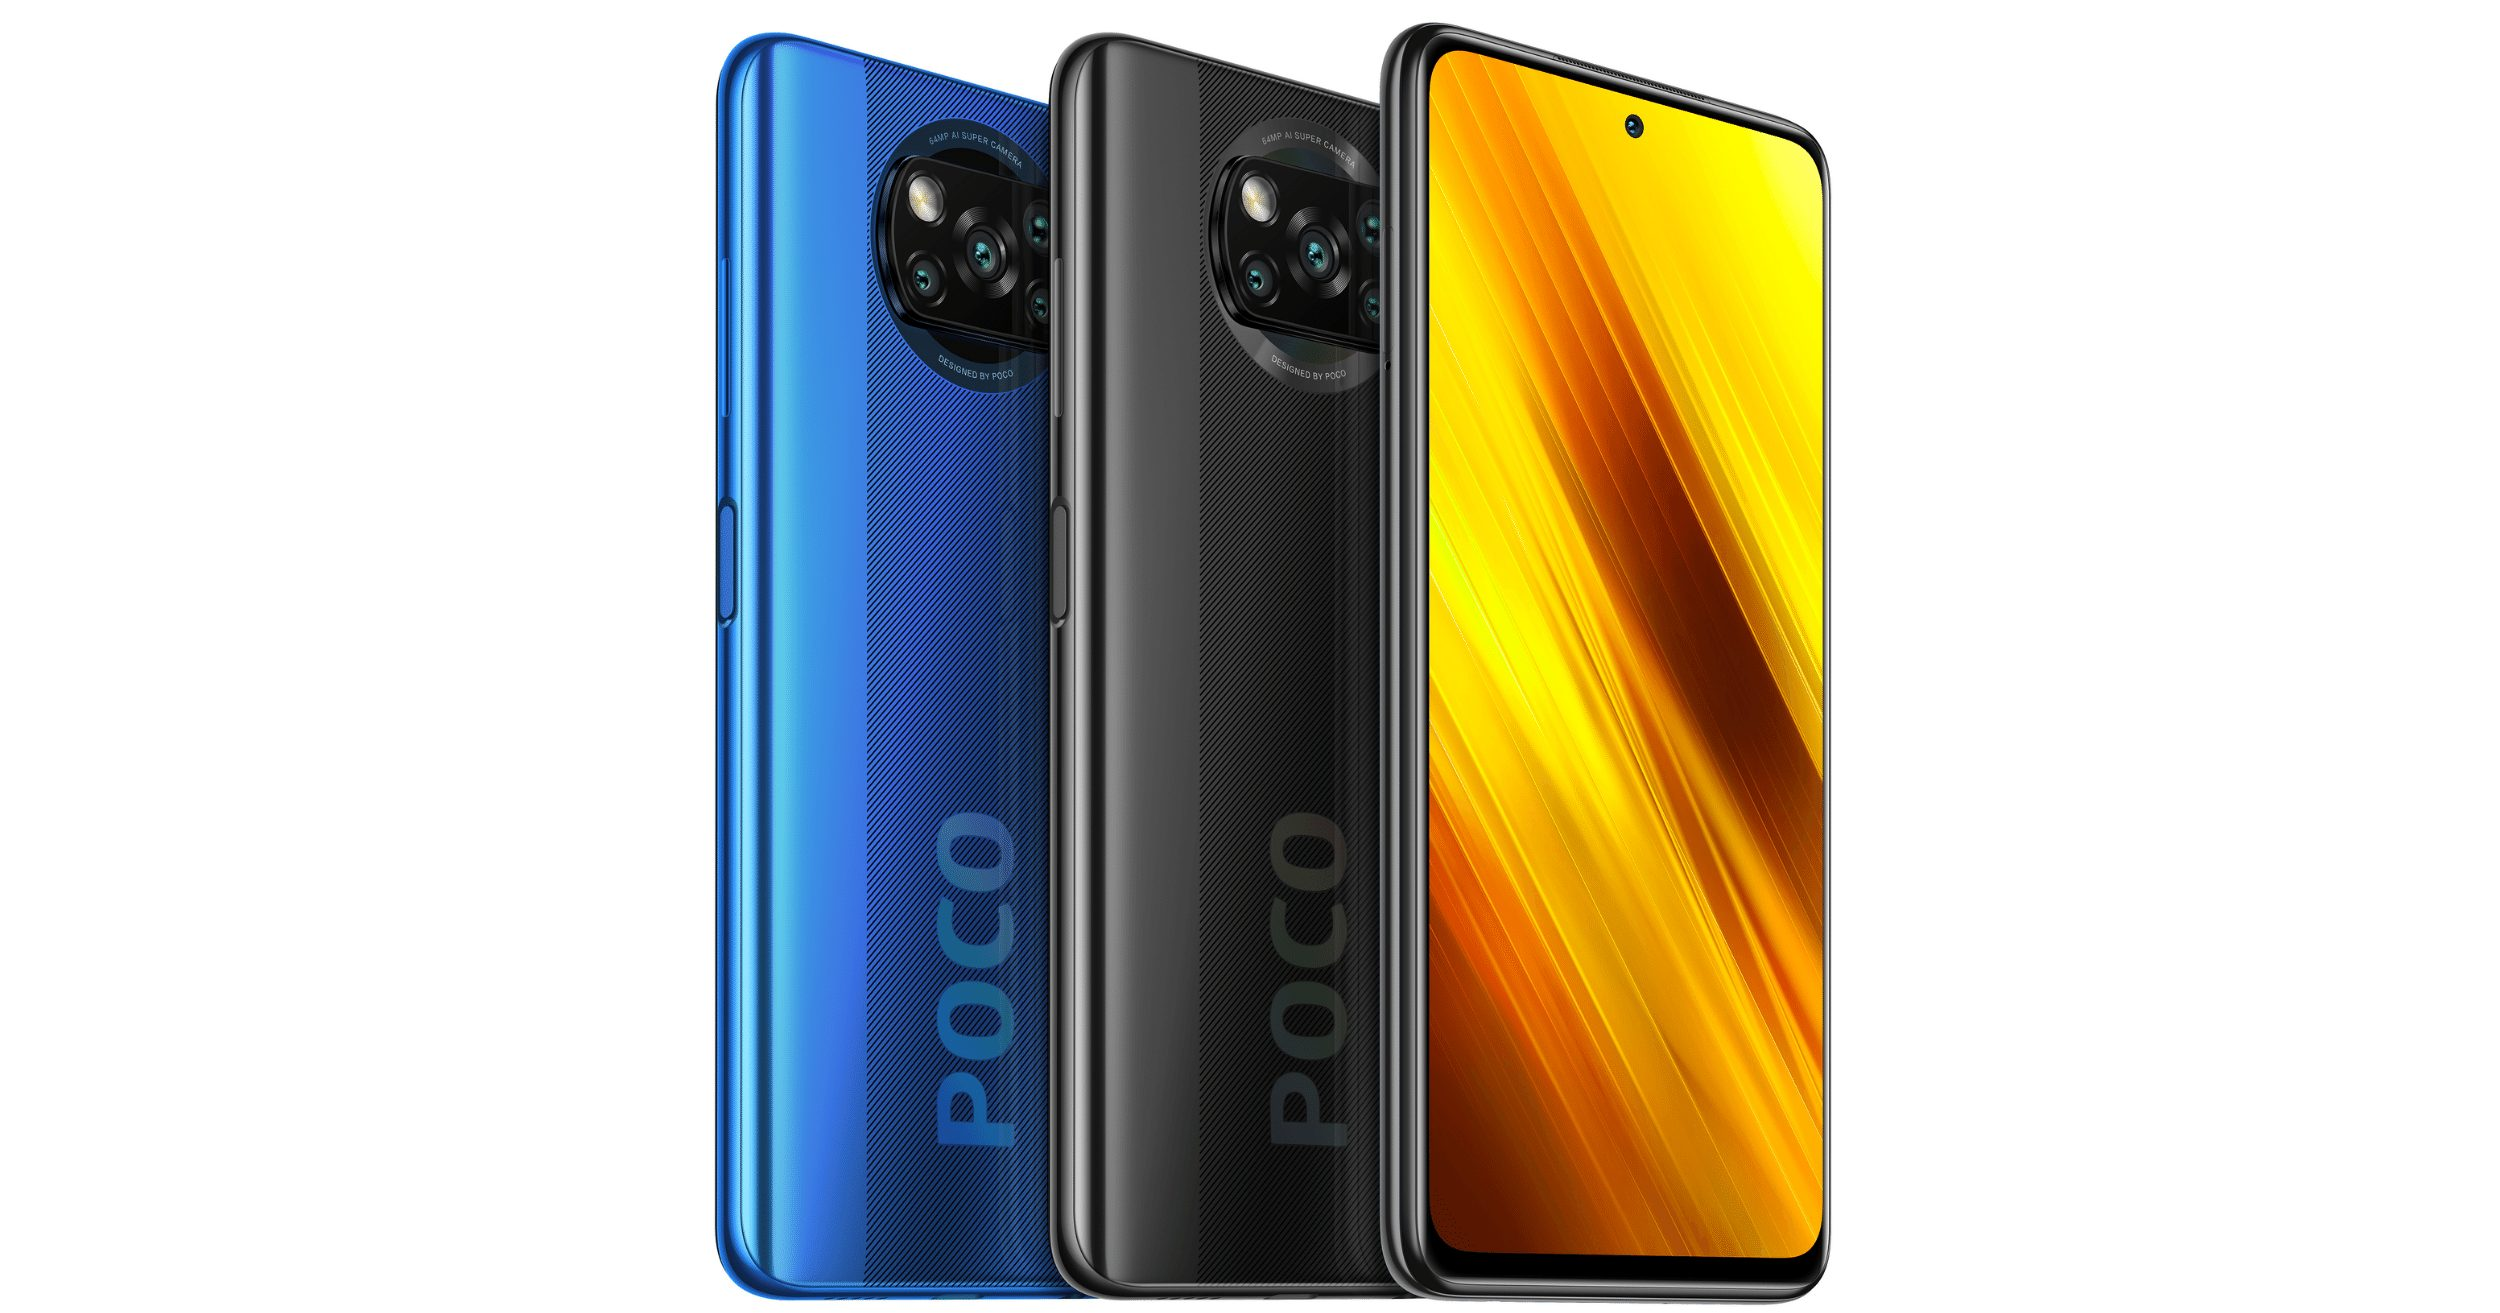 poco-x3-nfc-with-120hz-display-now-available-for-purchase-nationwide